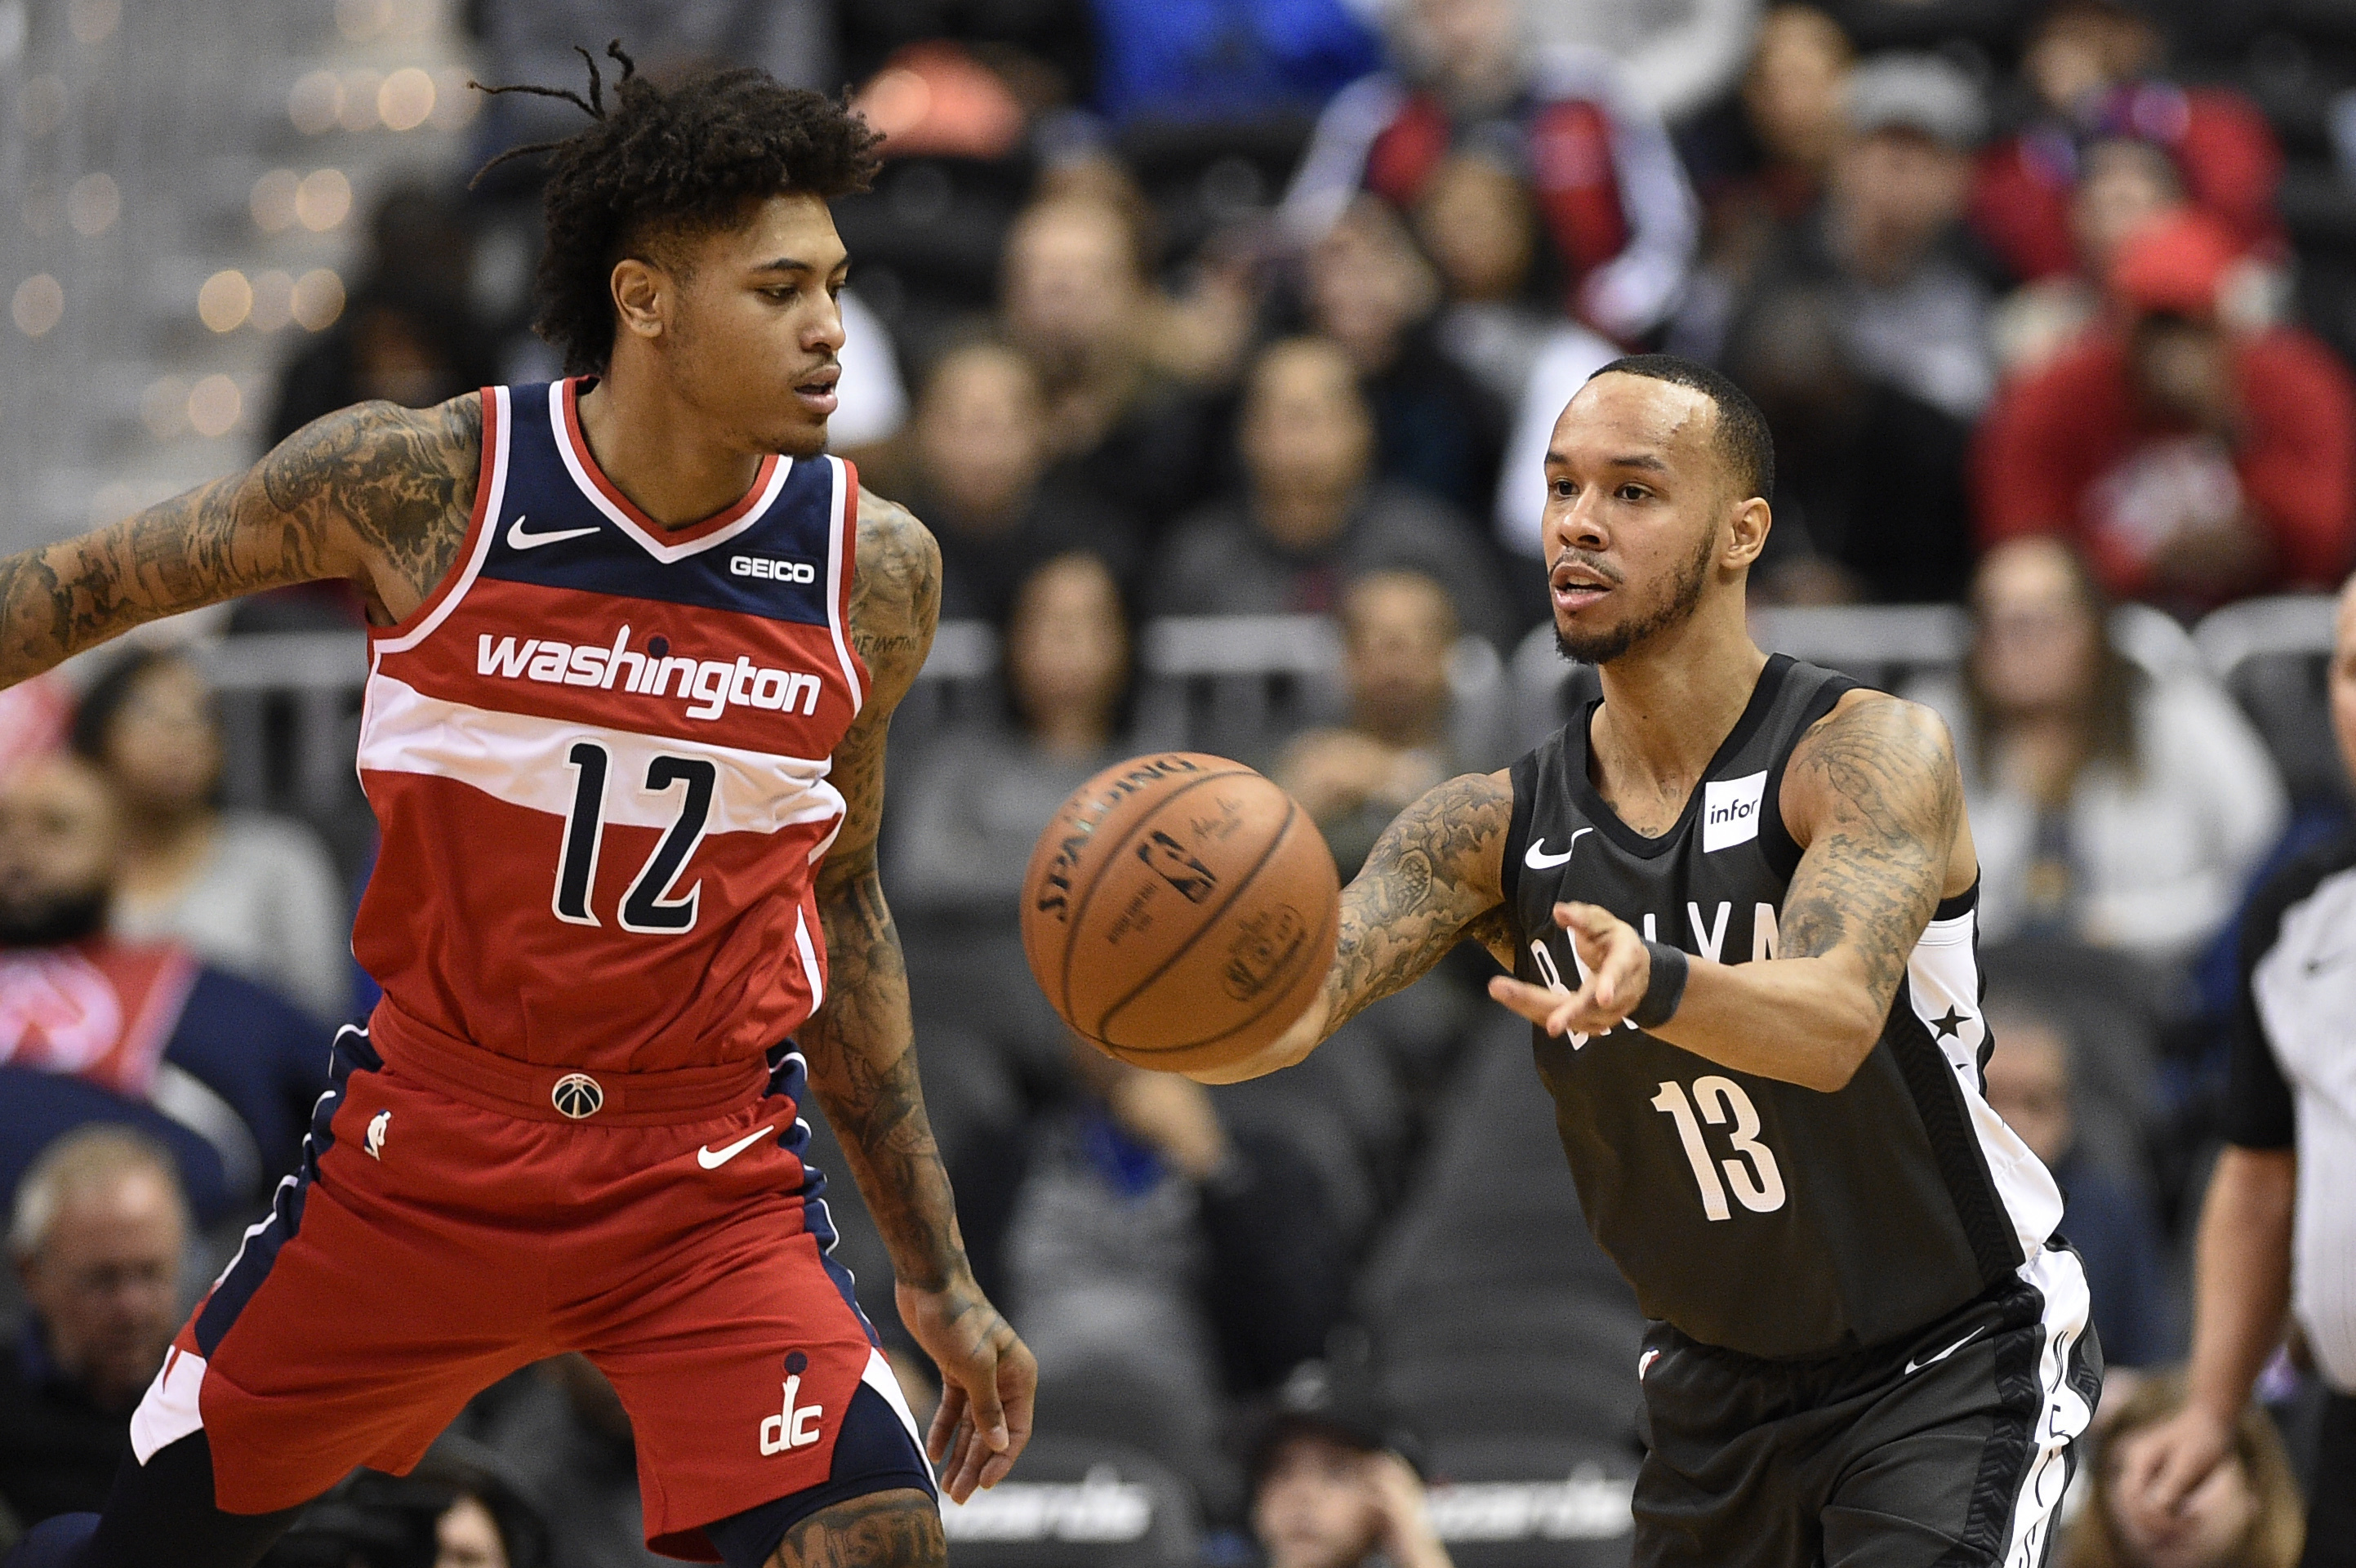 Wall scores 30 points, Wizards handed Nets 6th straight loss